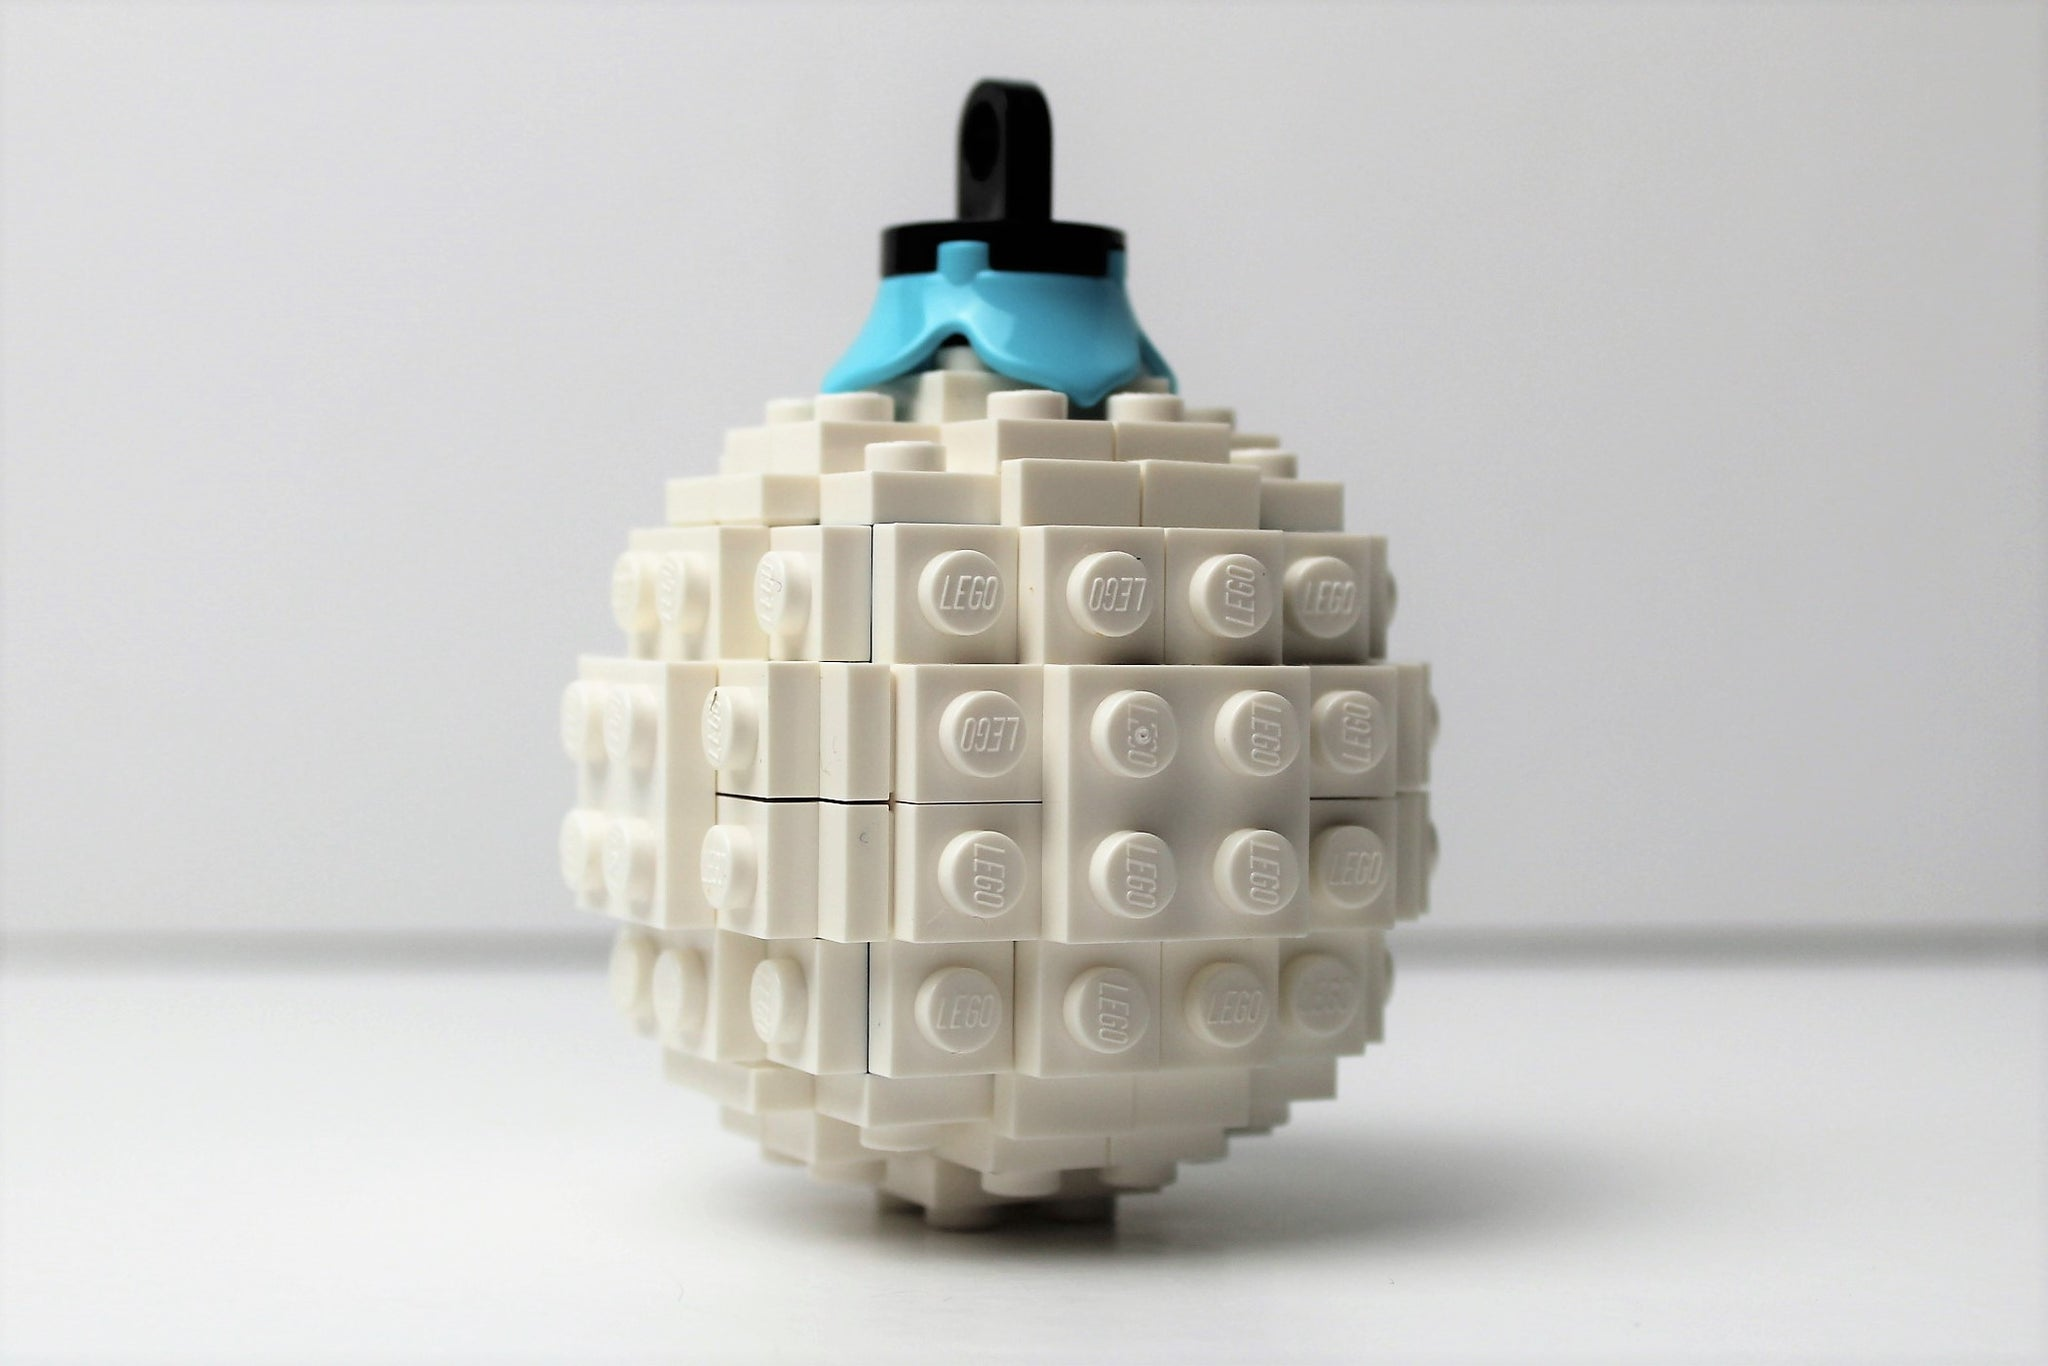 Downloadable Instructions for a Toy Brick Christmas Bauble Ornament (Sphere)